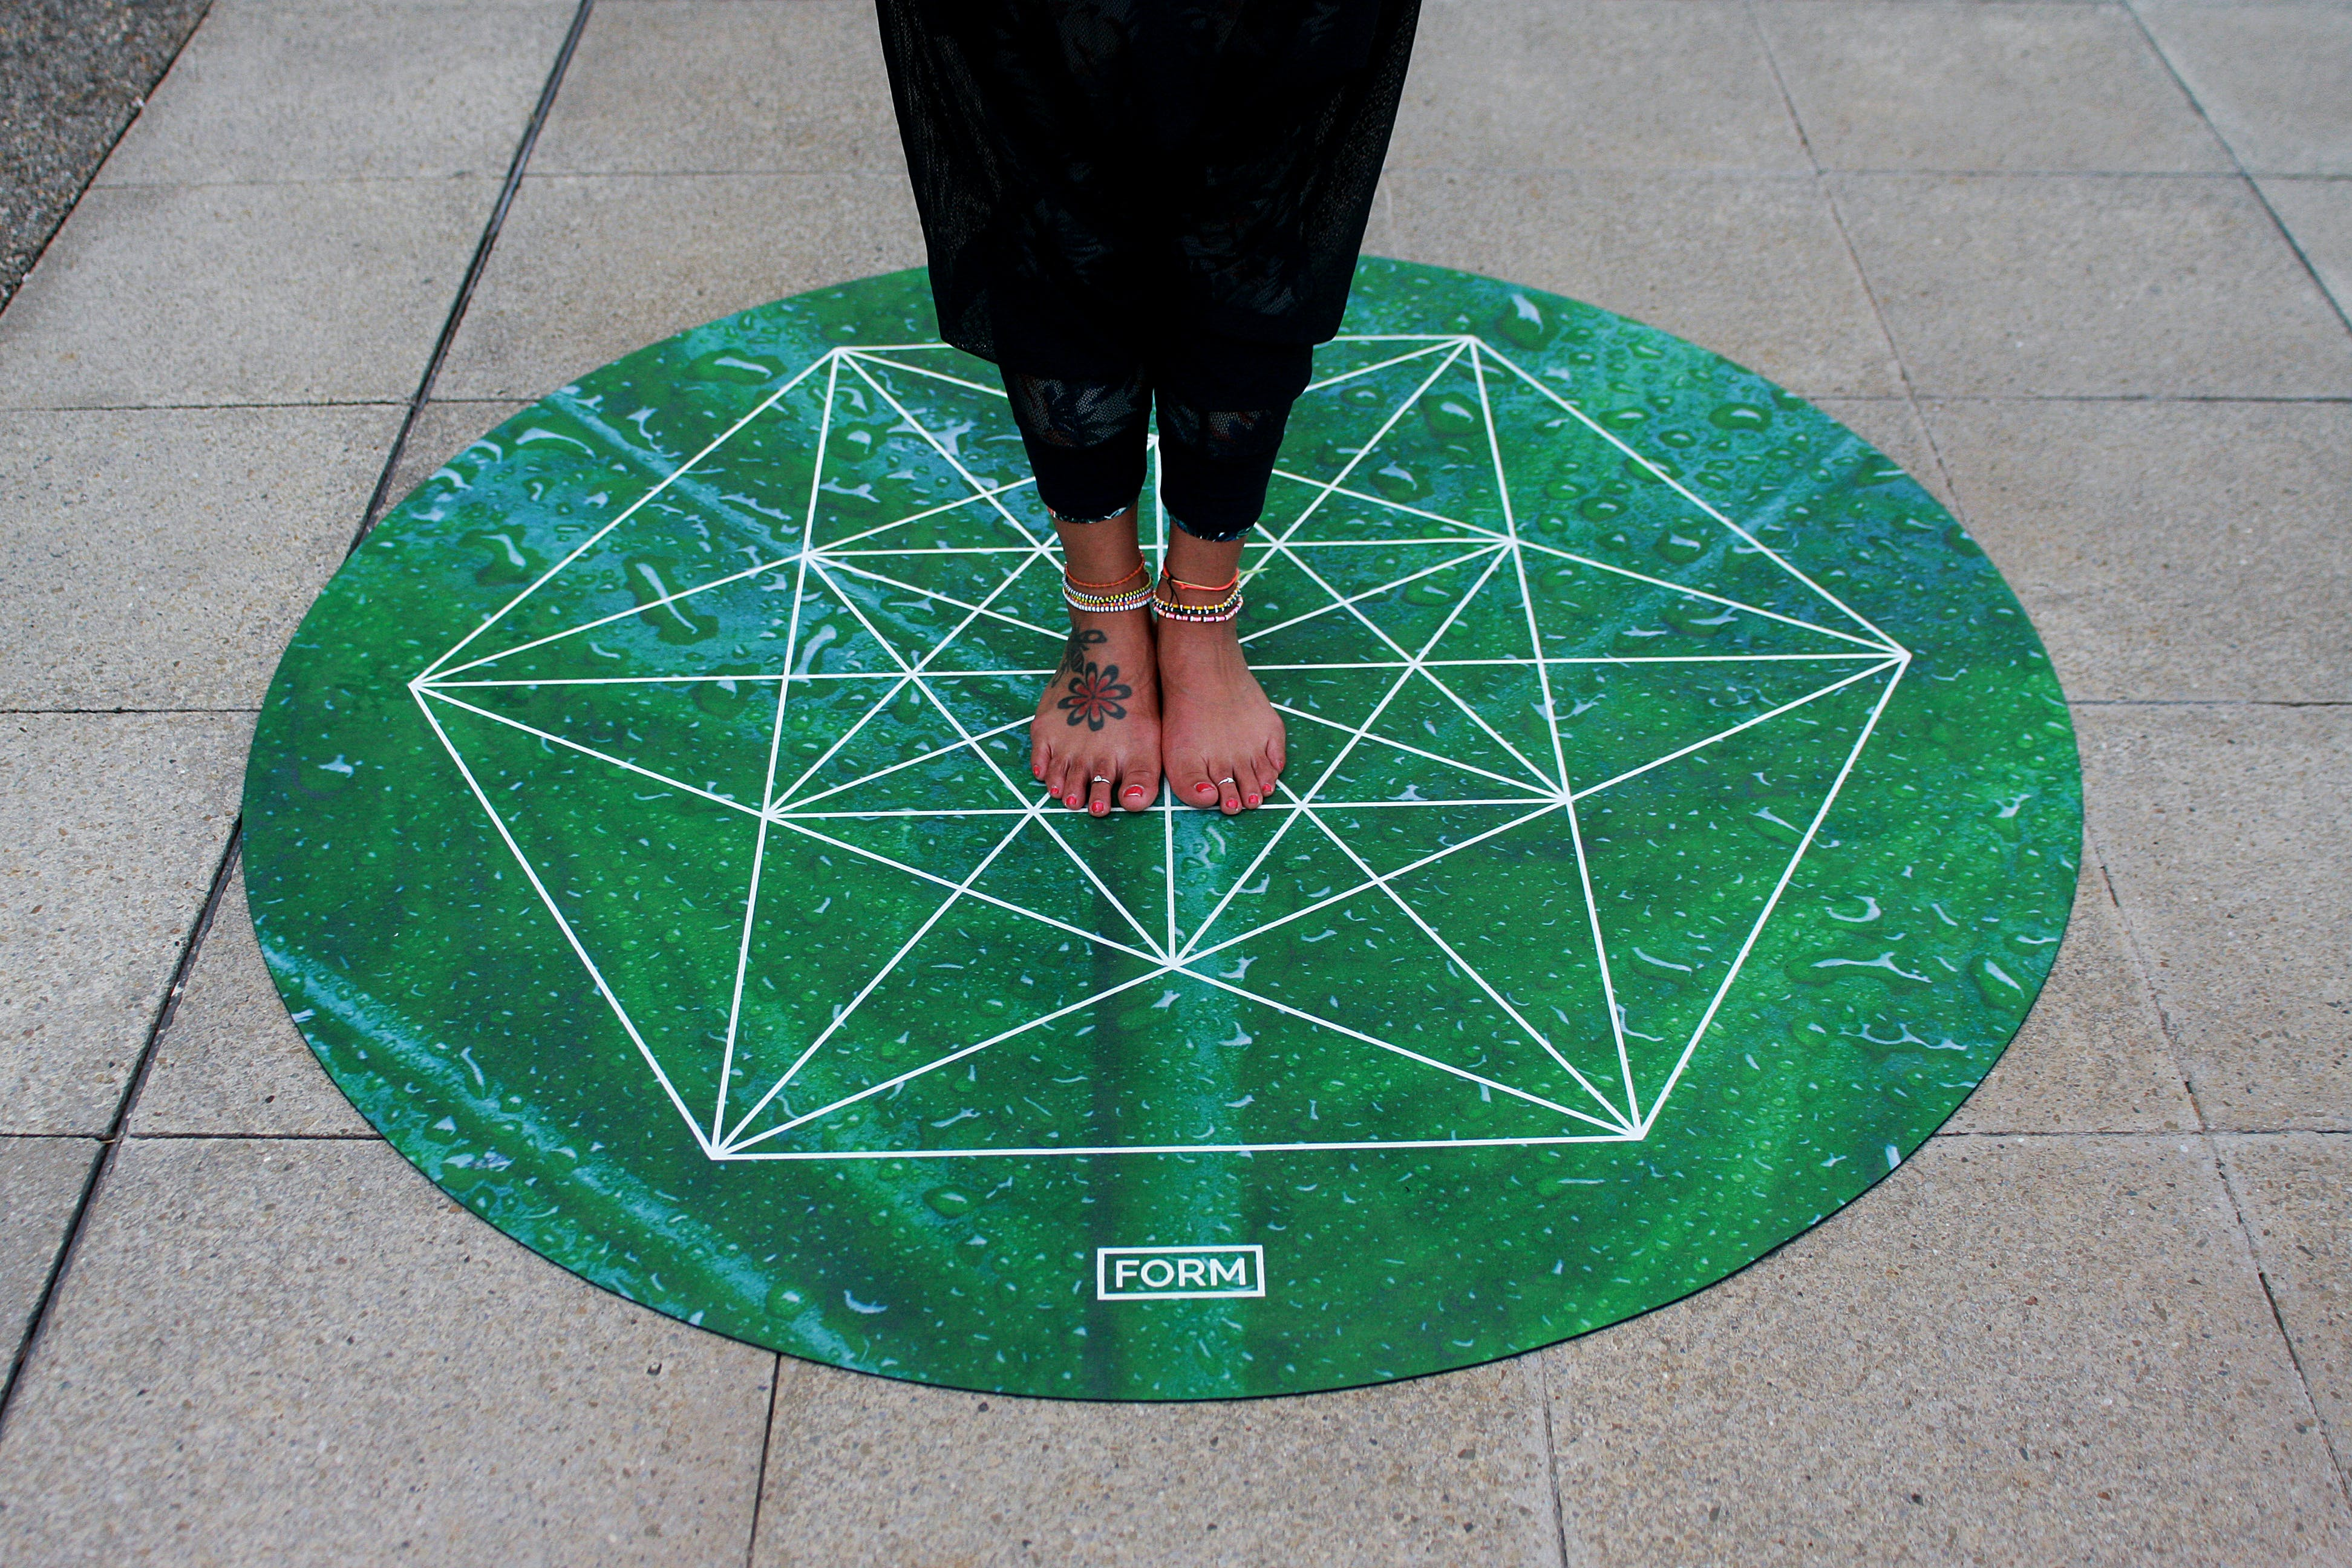 Person Standing on Green Round Mat